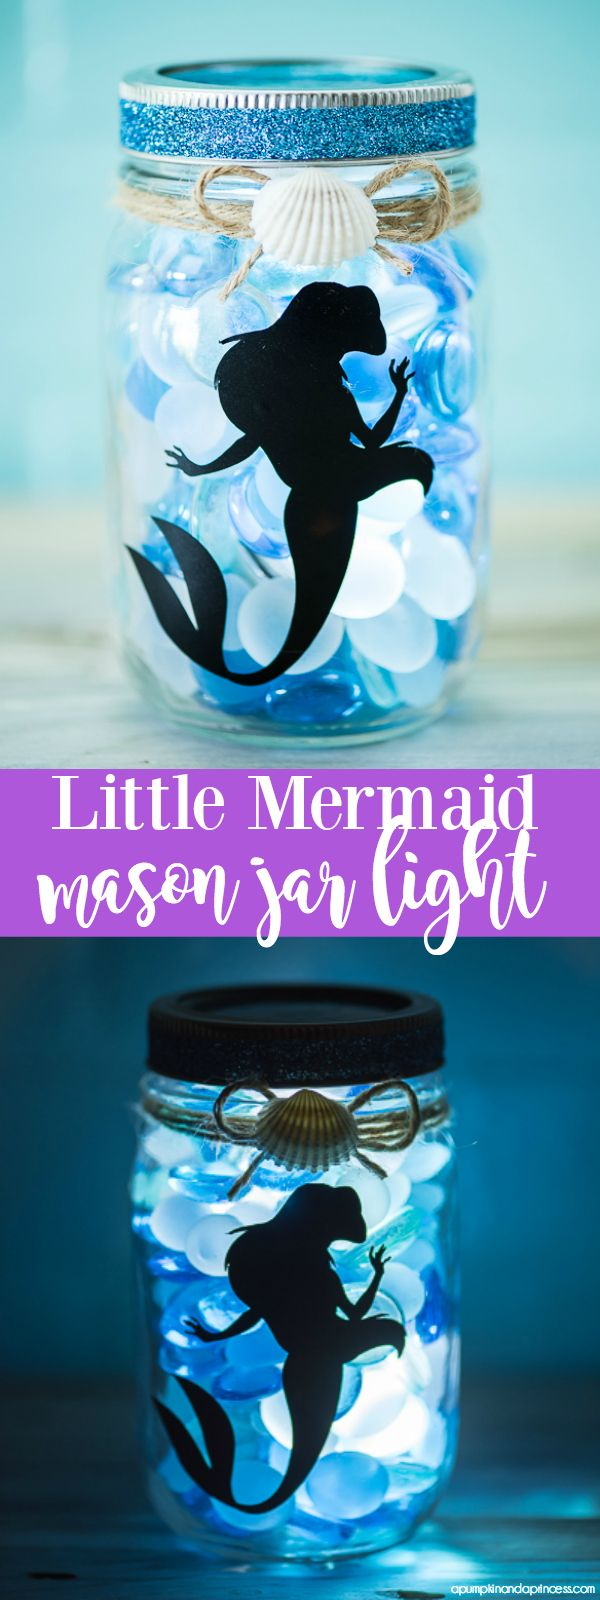 DIY Little Mermaid Mason Jar Light - Cricut projects - mermaid crafts - girls room ideas - DIY nightlight - make your own night light